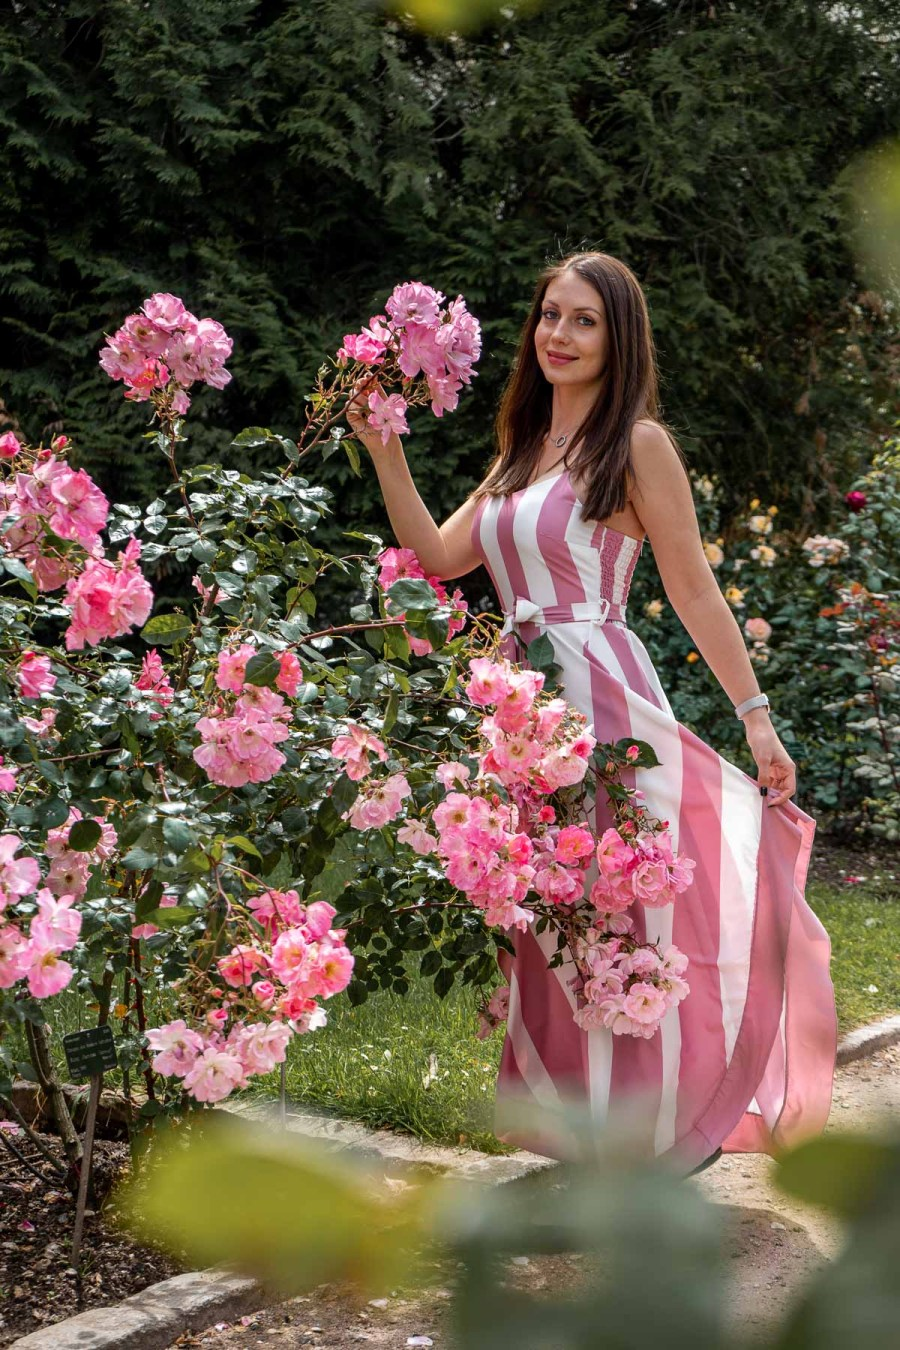 Girl in a pink dress standing in the rose garden at Jardin des Plantes in Paris